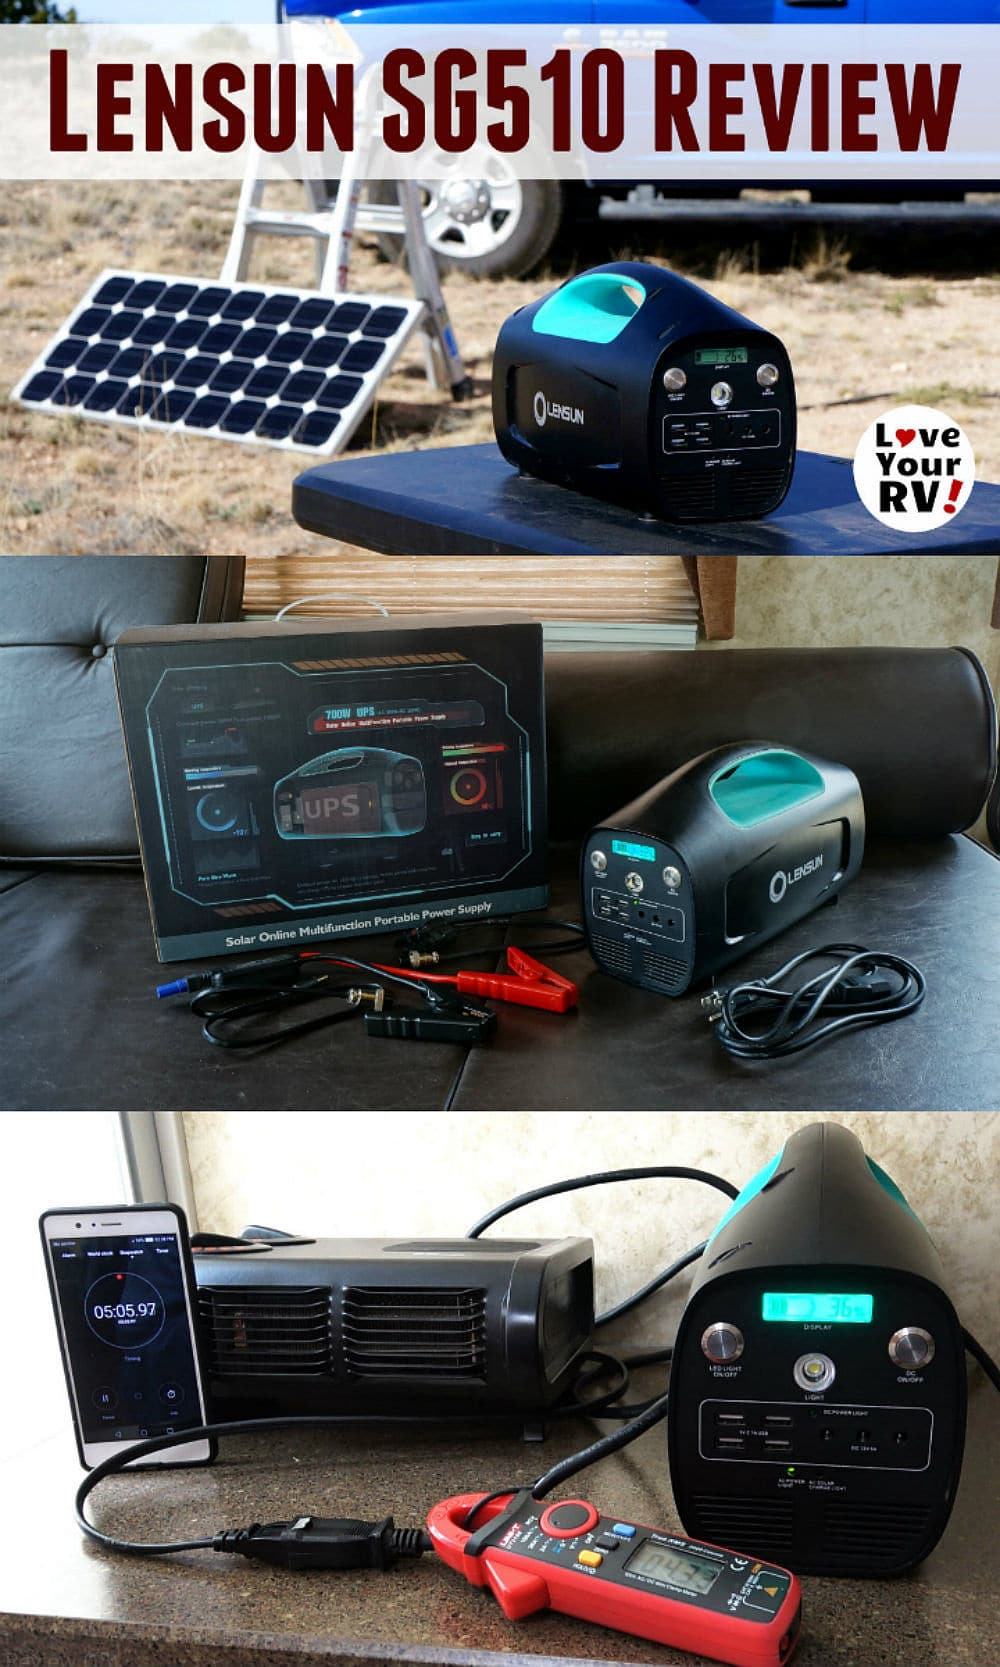 Review of the Lensun SG510 solar generator power box by the Love Your RV blog - https://www.loveyourrv.com